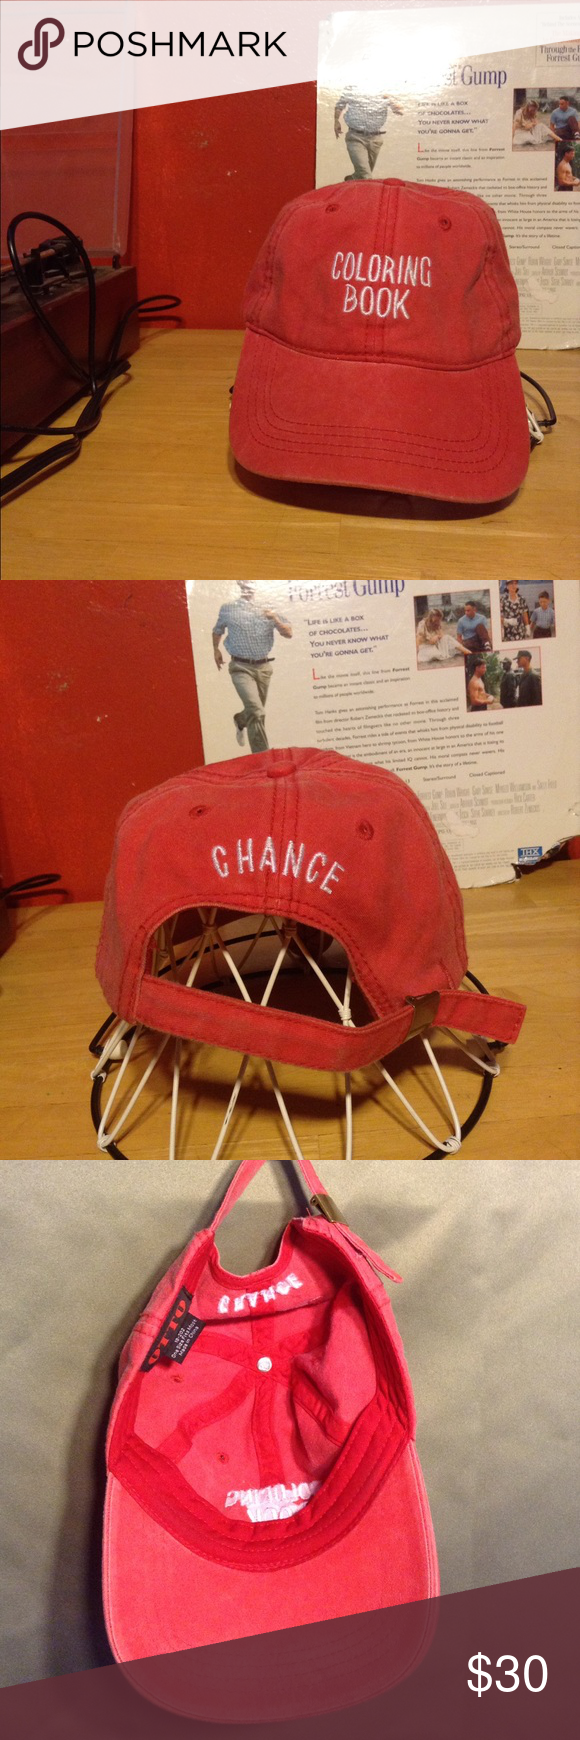 Chance The Rapper Coloring Book Hat Red Coloring Book Hat In